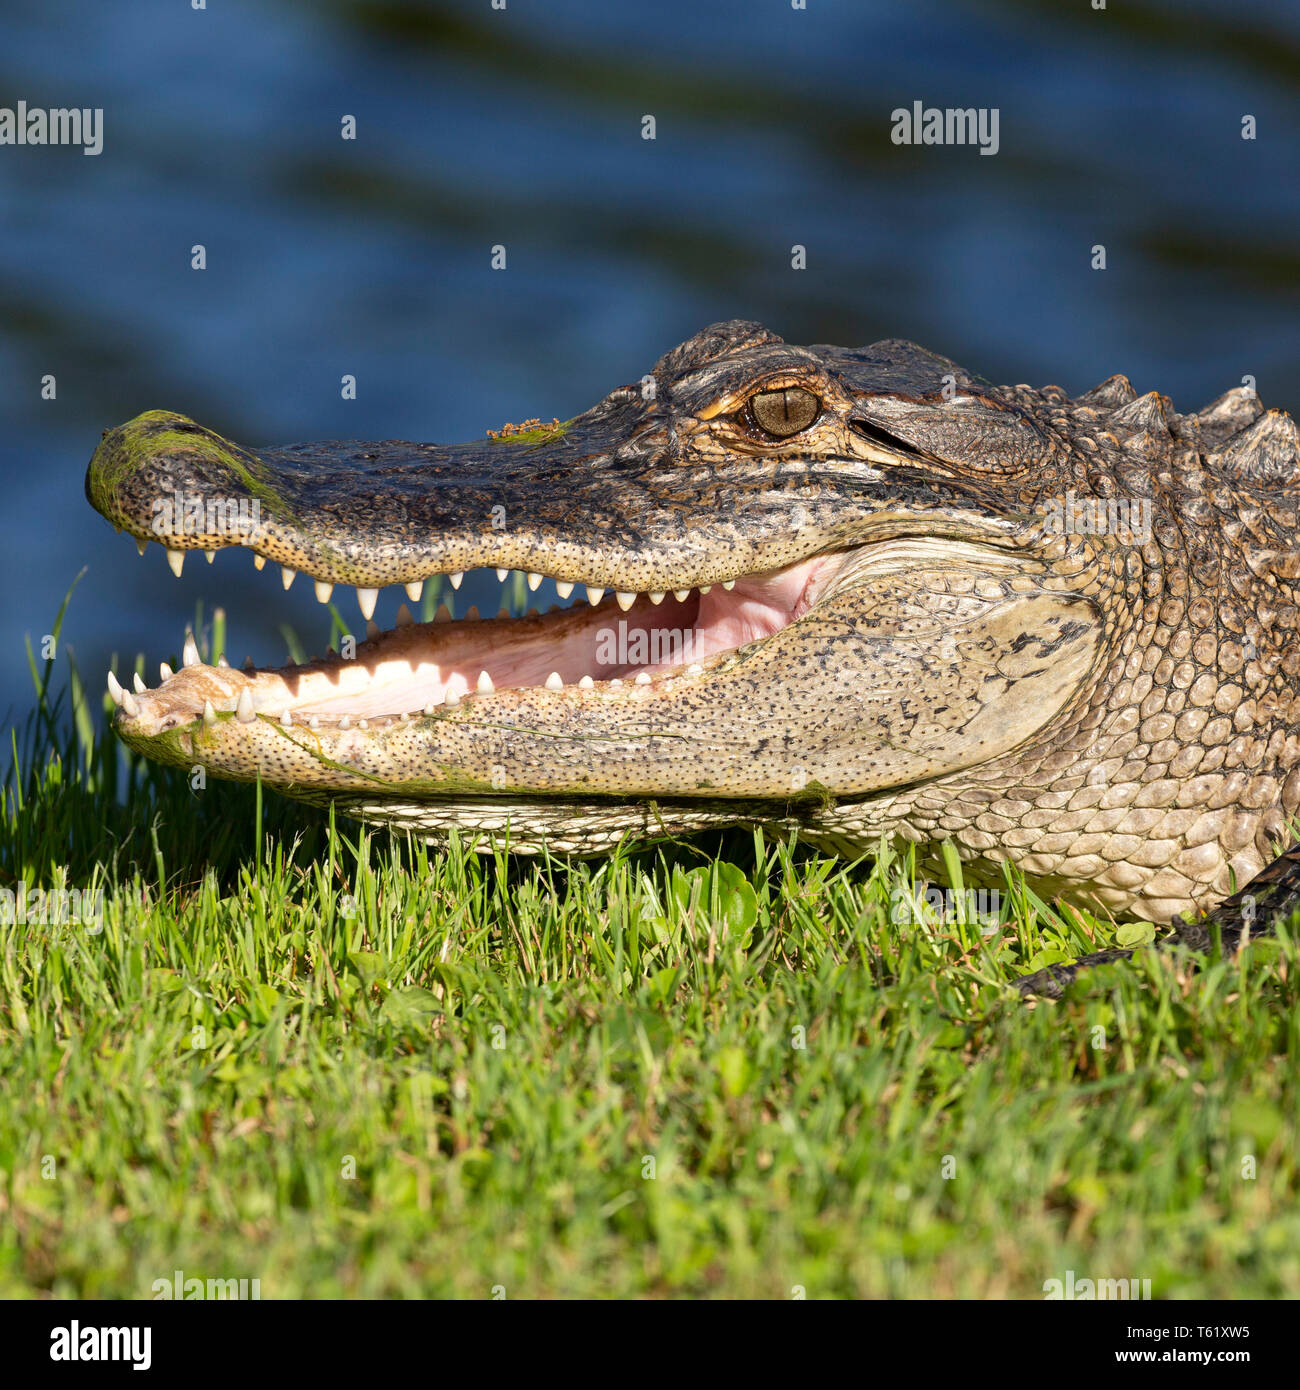 American alligator (Alligator mississippiensis) in Charleston in South Carolina, USA. The creature basks in sunshine by water. - Stock Image